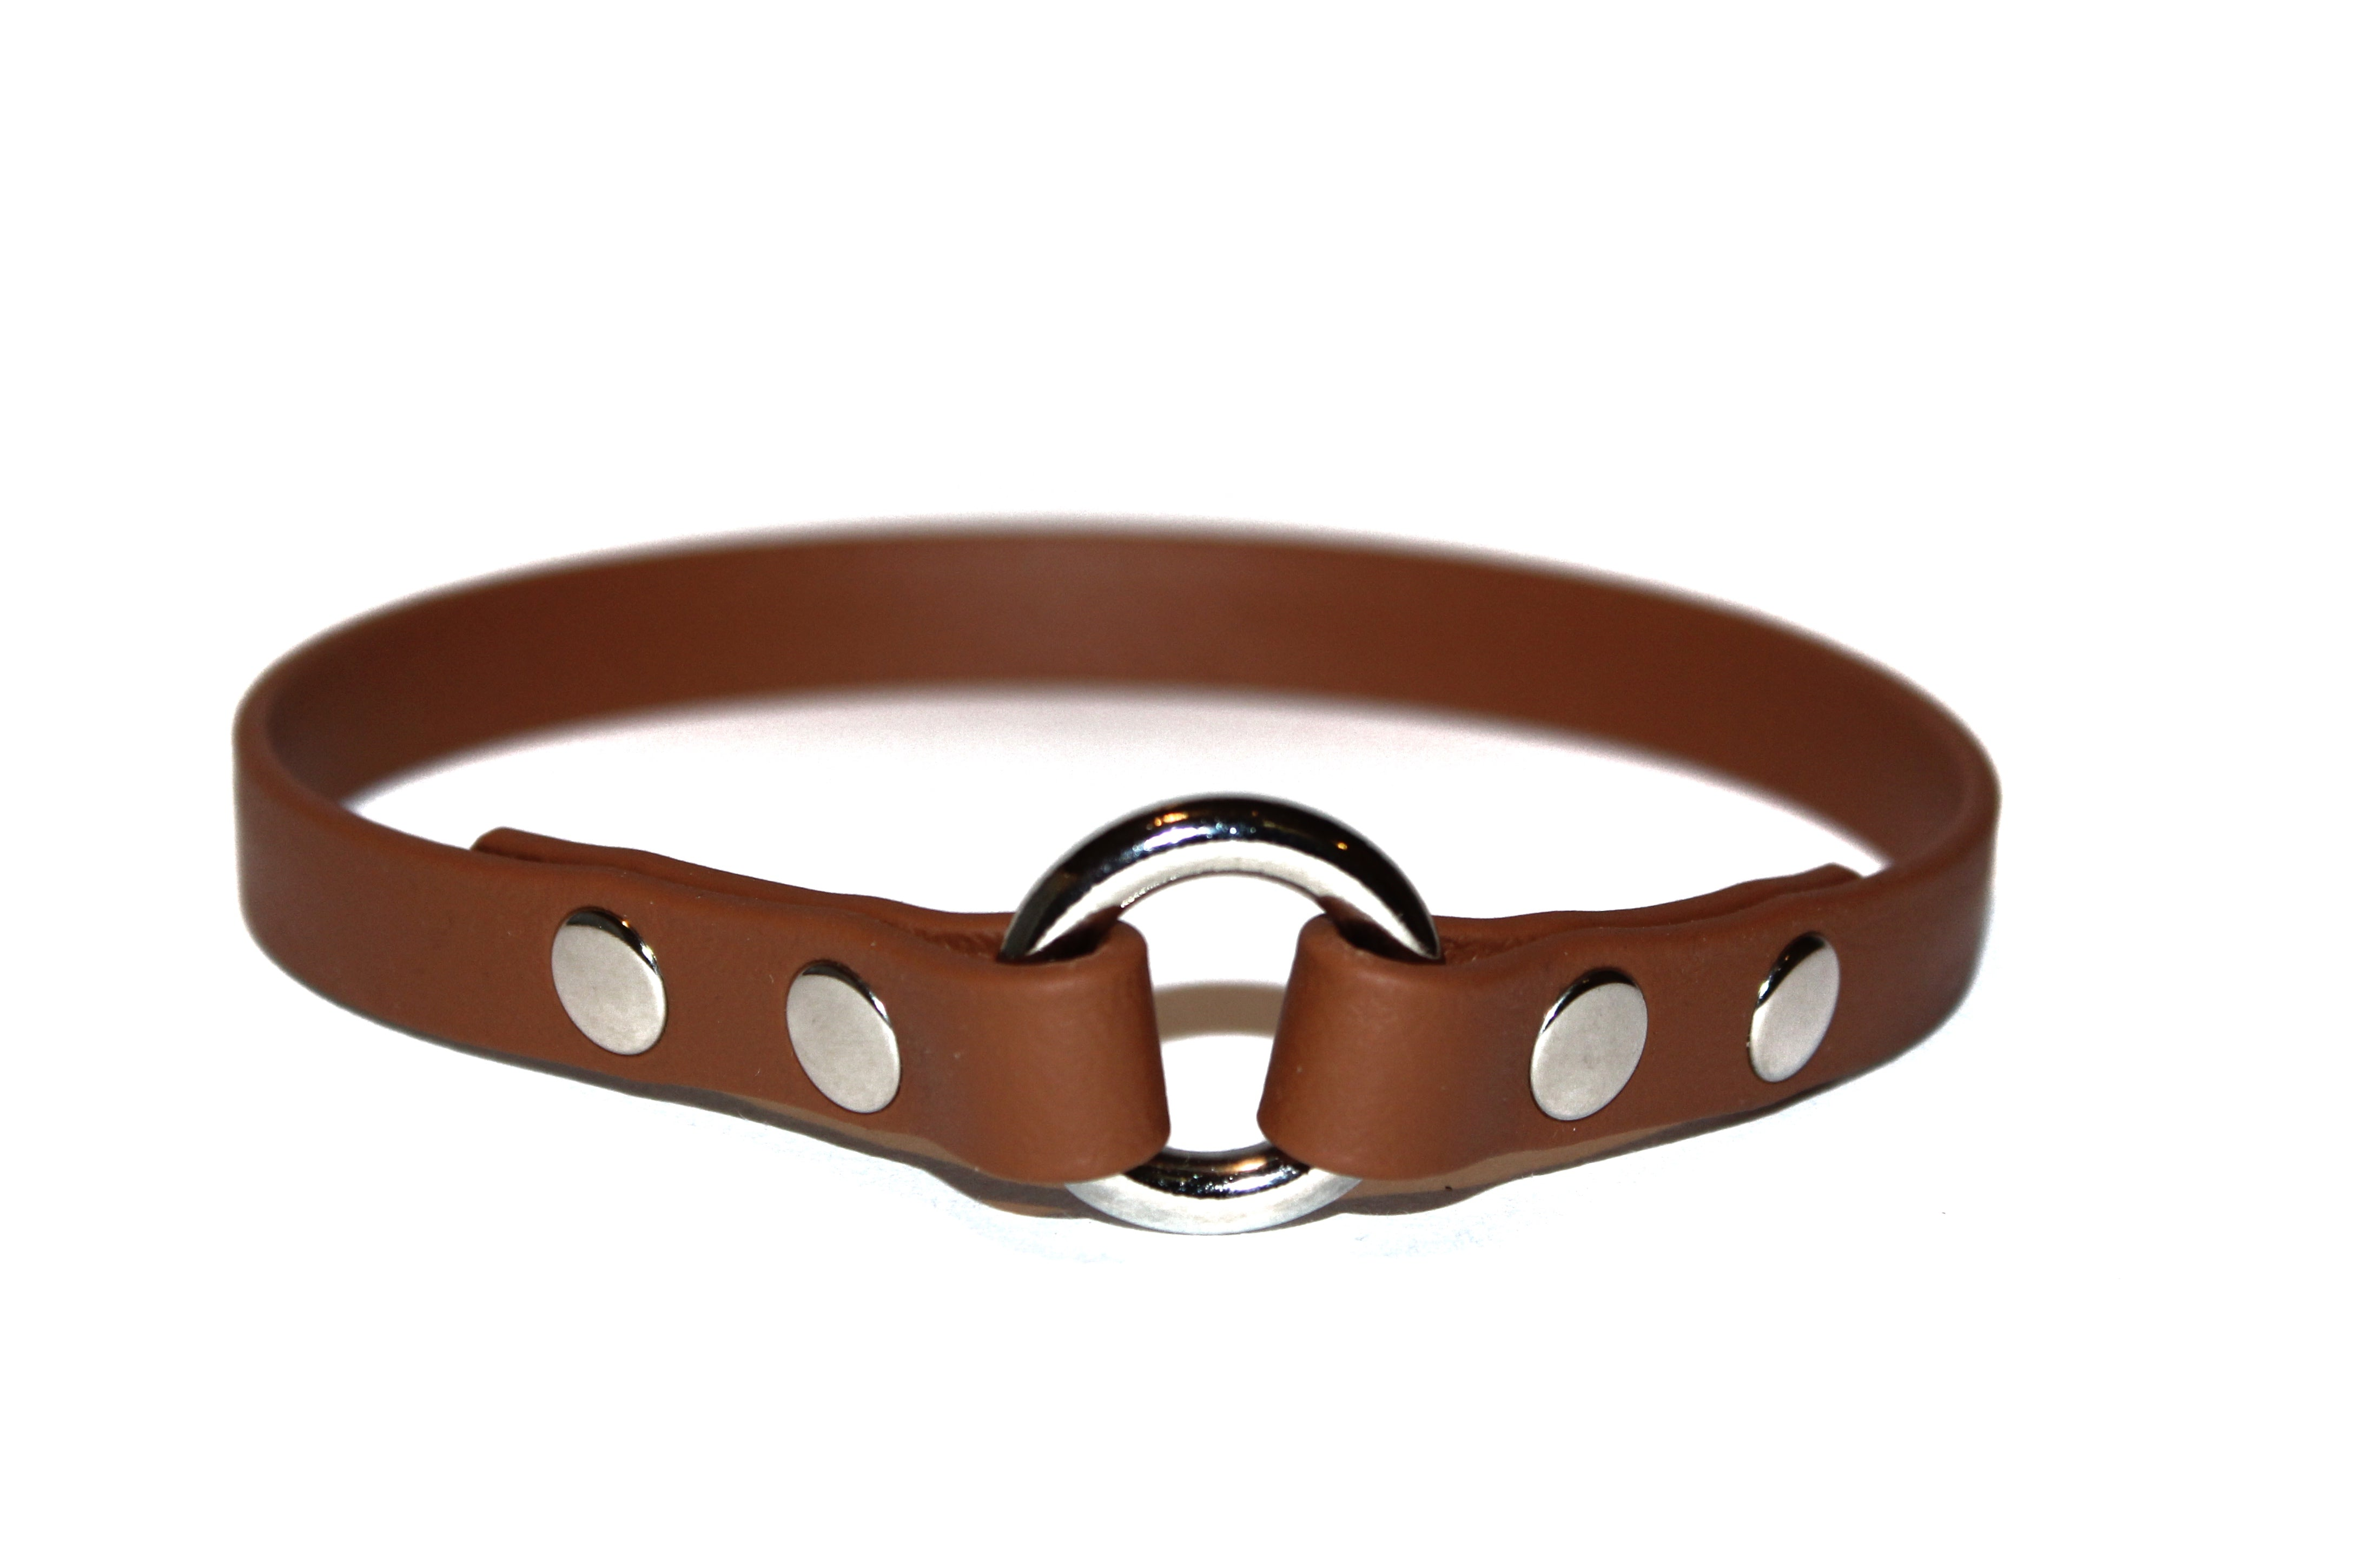 "Pumpkin Spice • ID Collar • Size 15"" • Nickel Plated • 1/2"" Wide"